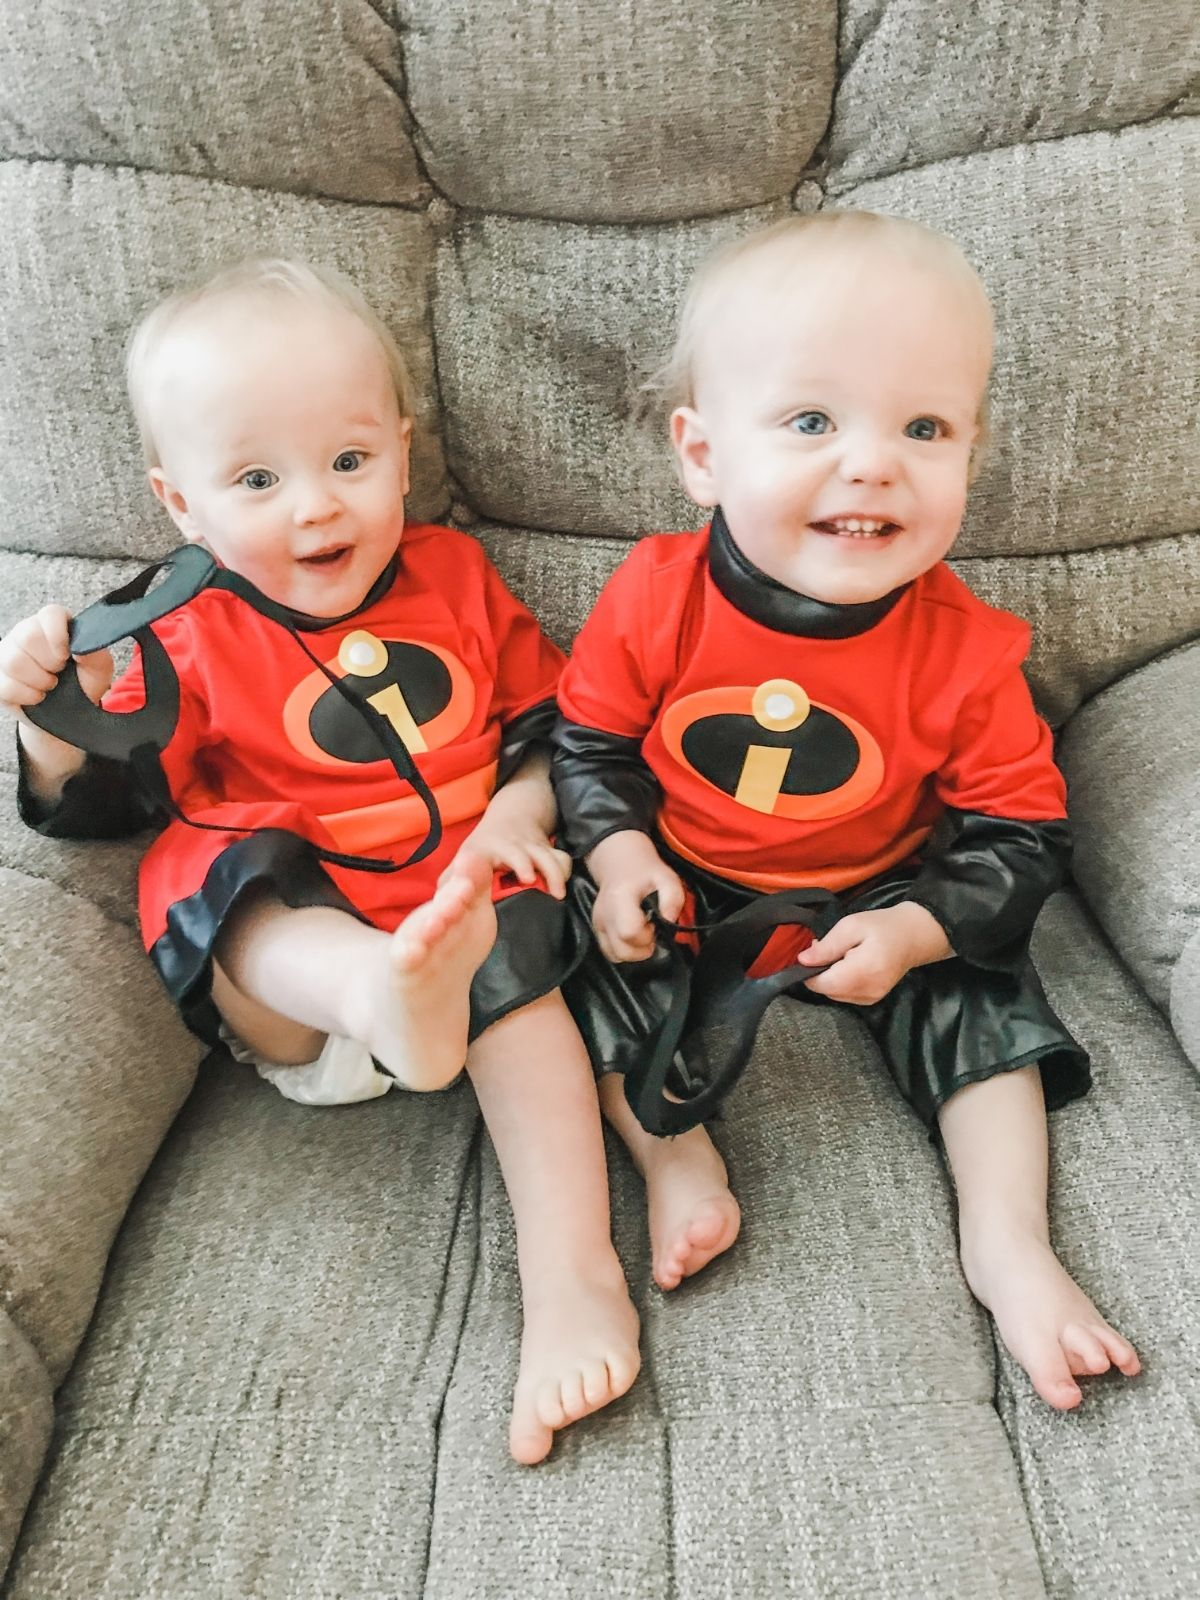 boy girl twin toddlers wearing incredibles halloween costumes and sitting in a grey chair